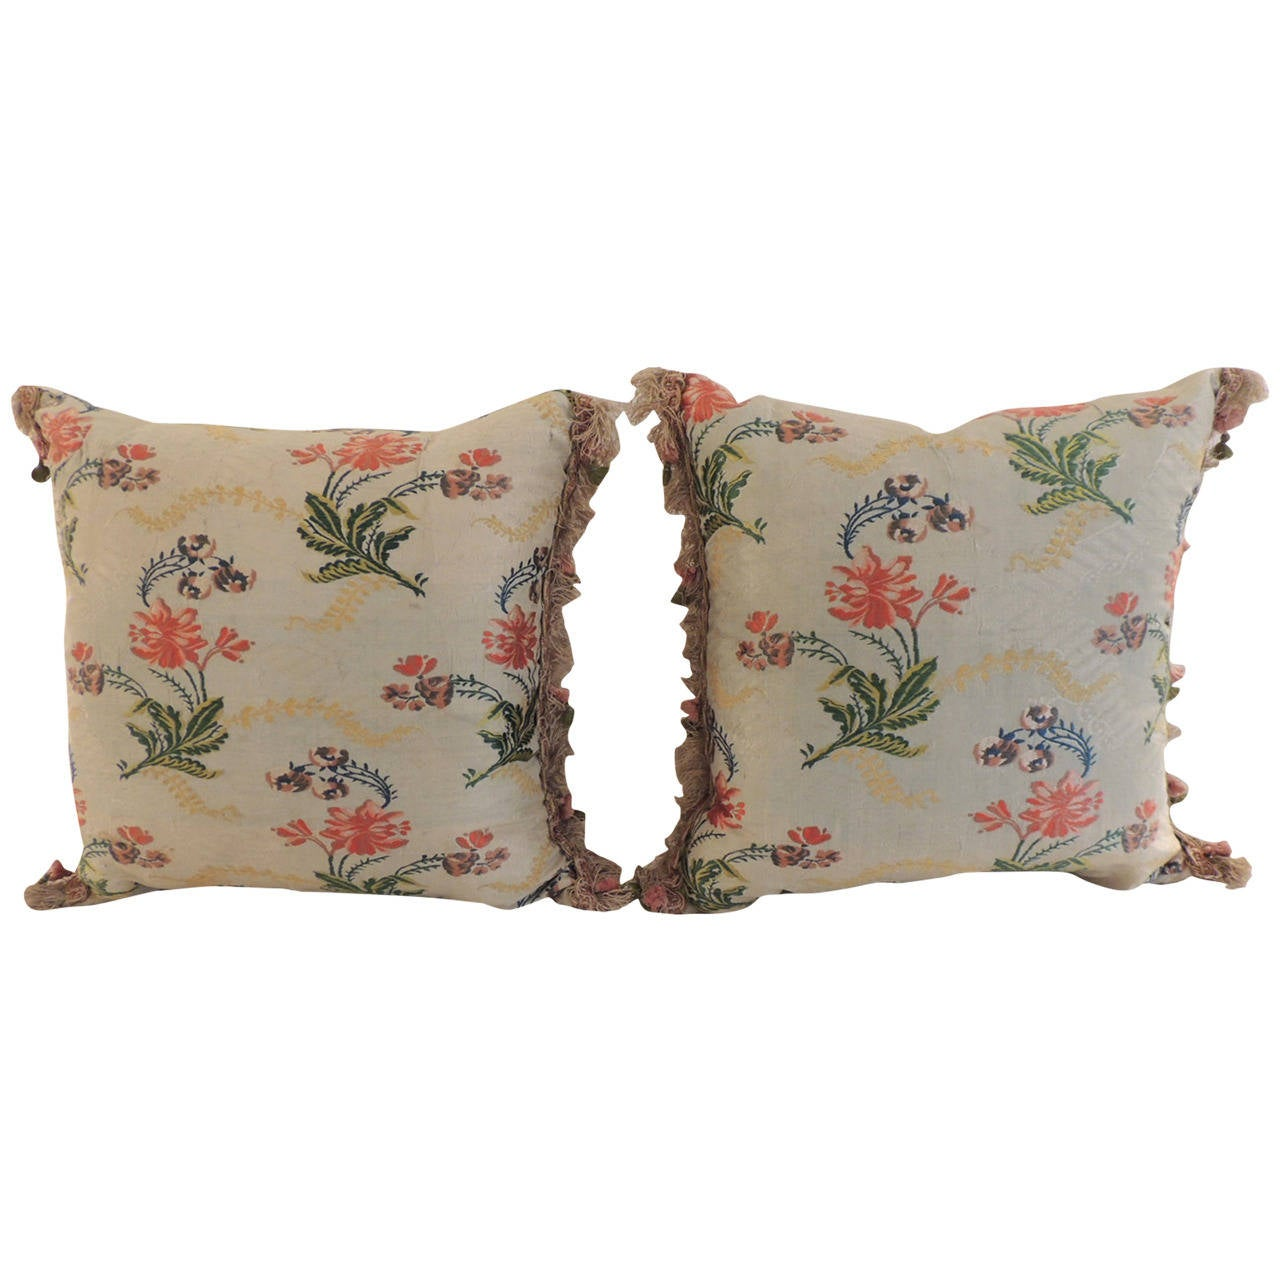 Decorative Pillow Trim : Pair of Antique Silk Brocade Floral Decorative Pillows with Tassel Trim For Sale at 1stdibs